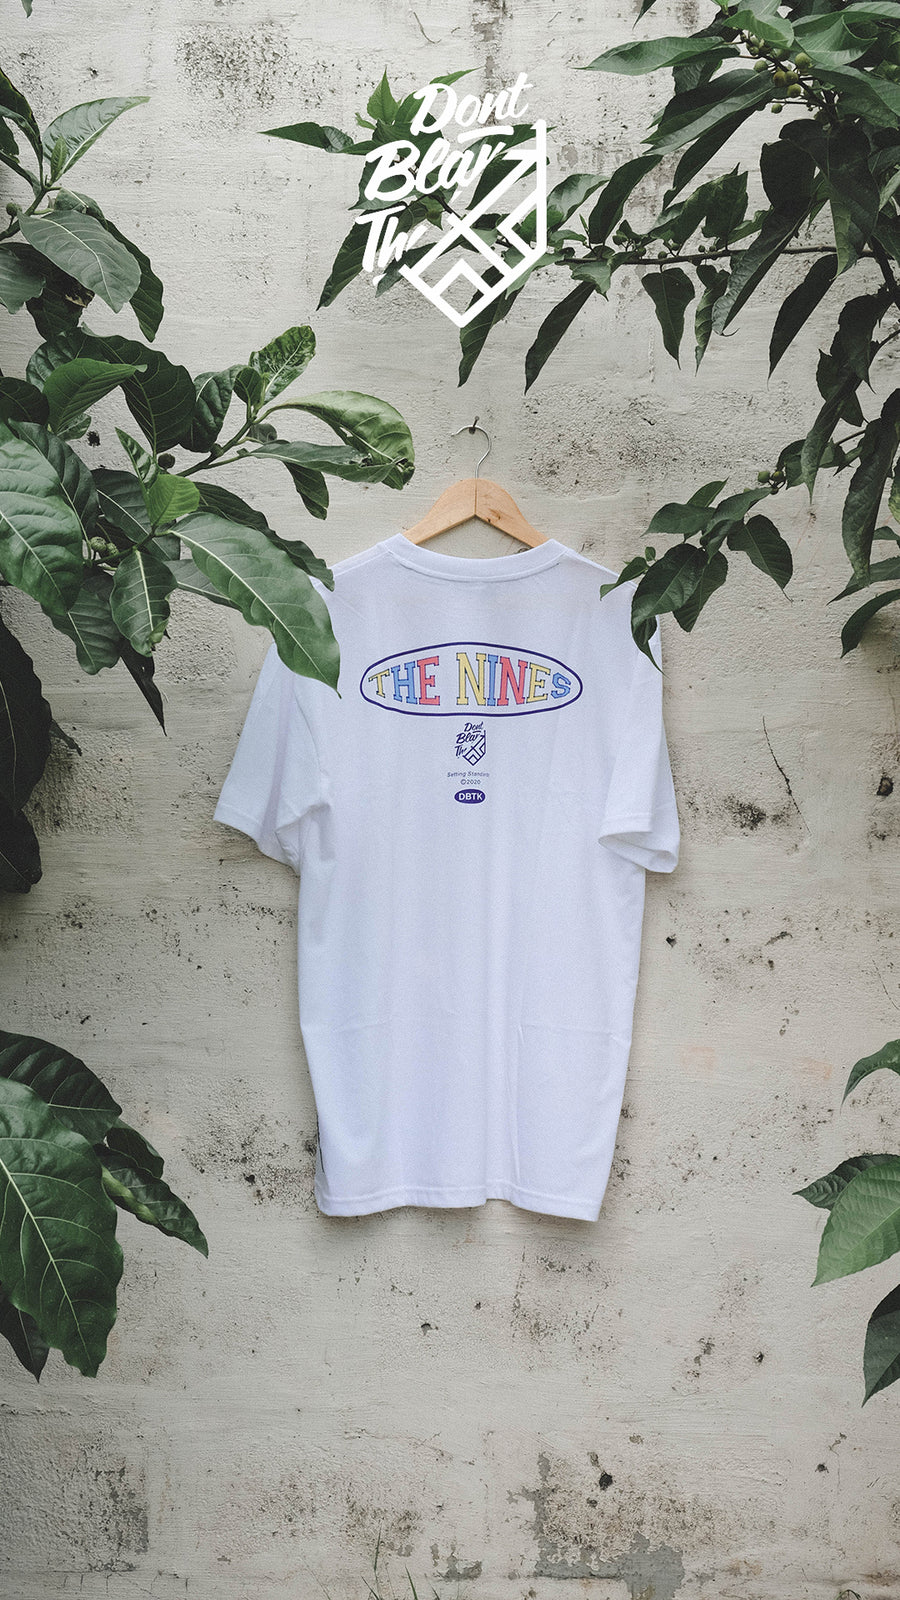 DBTK : Good Manners (White)